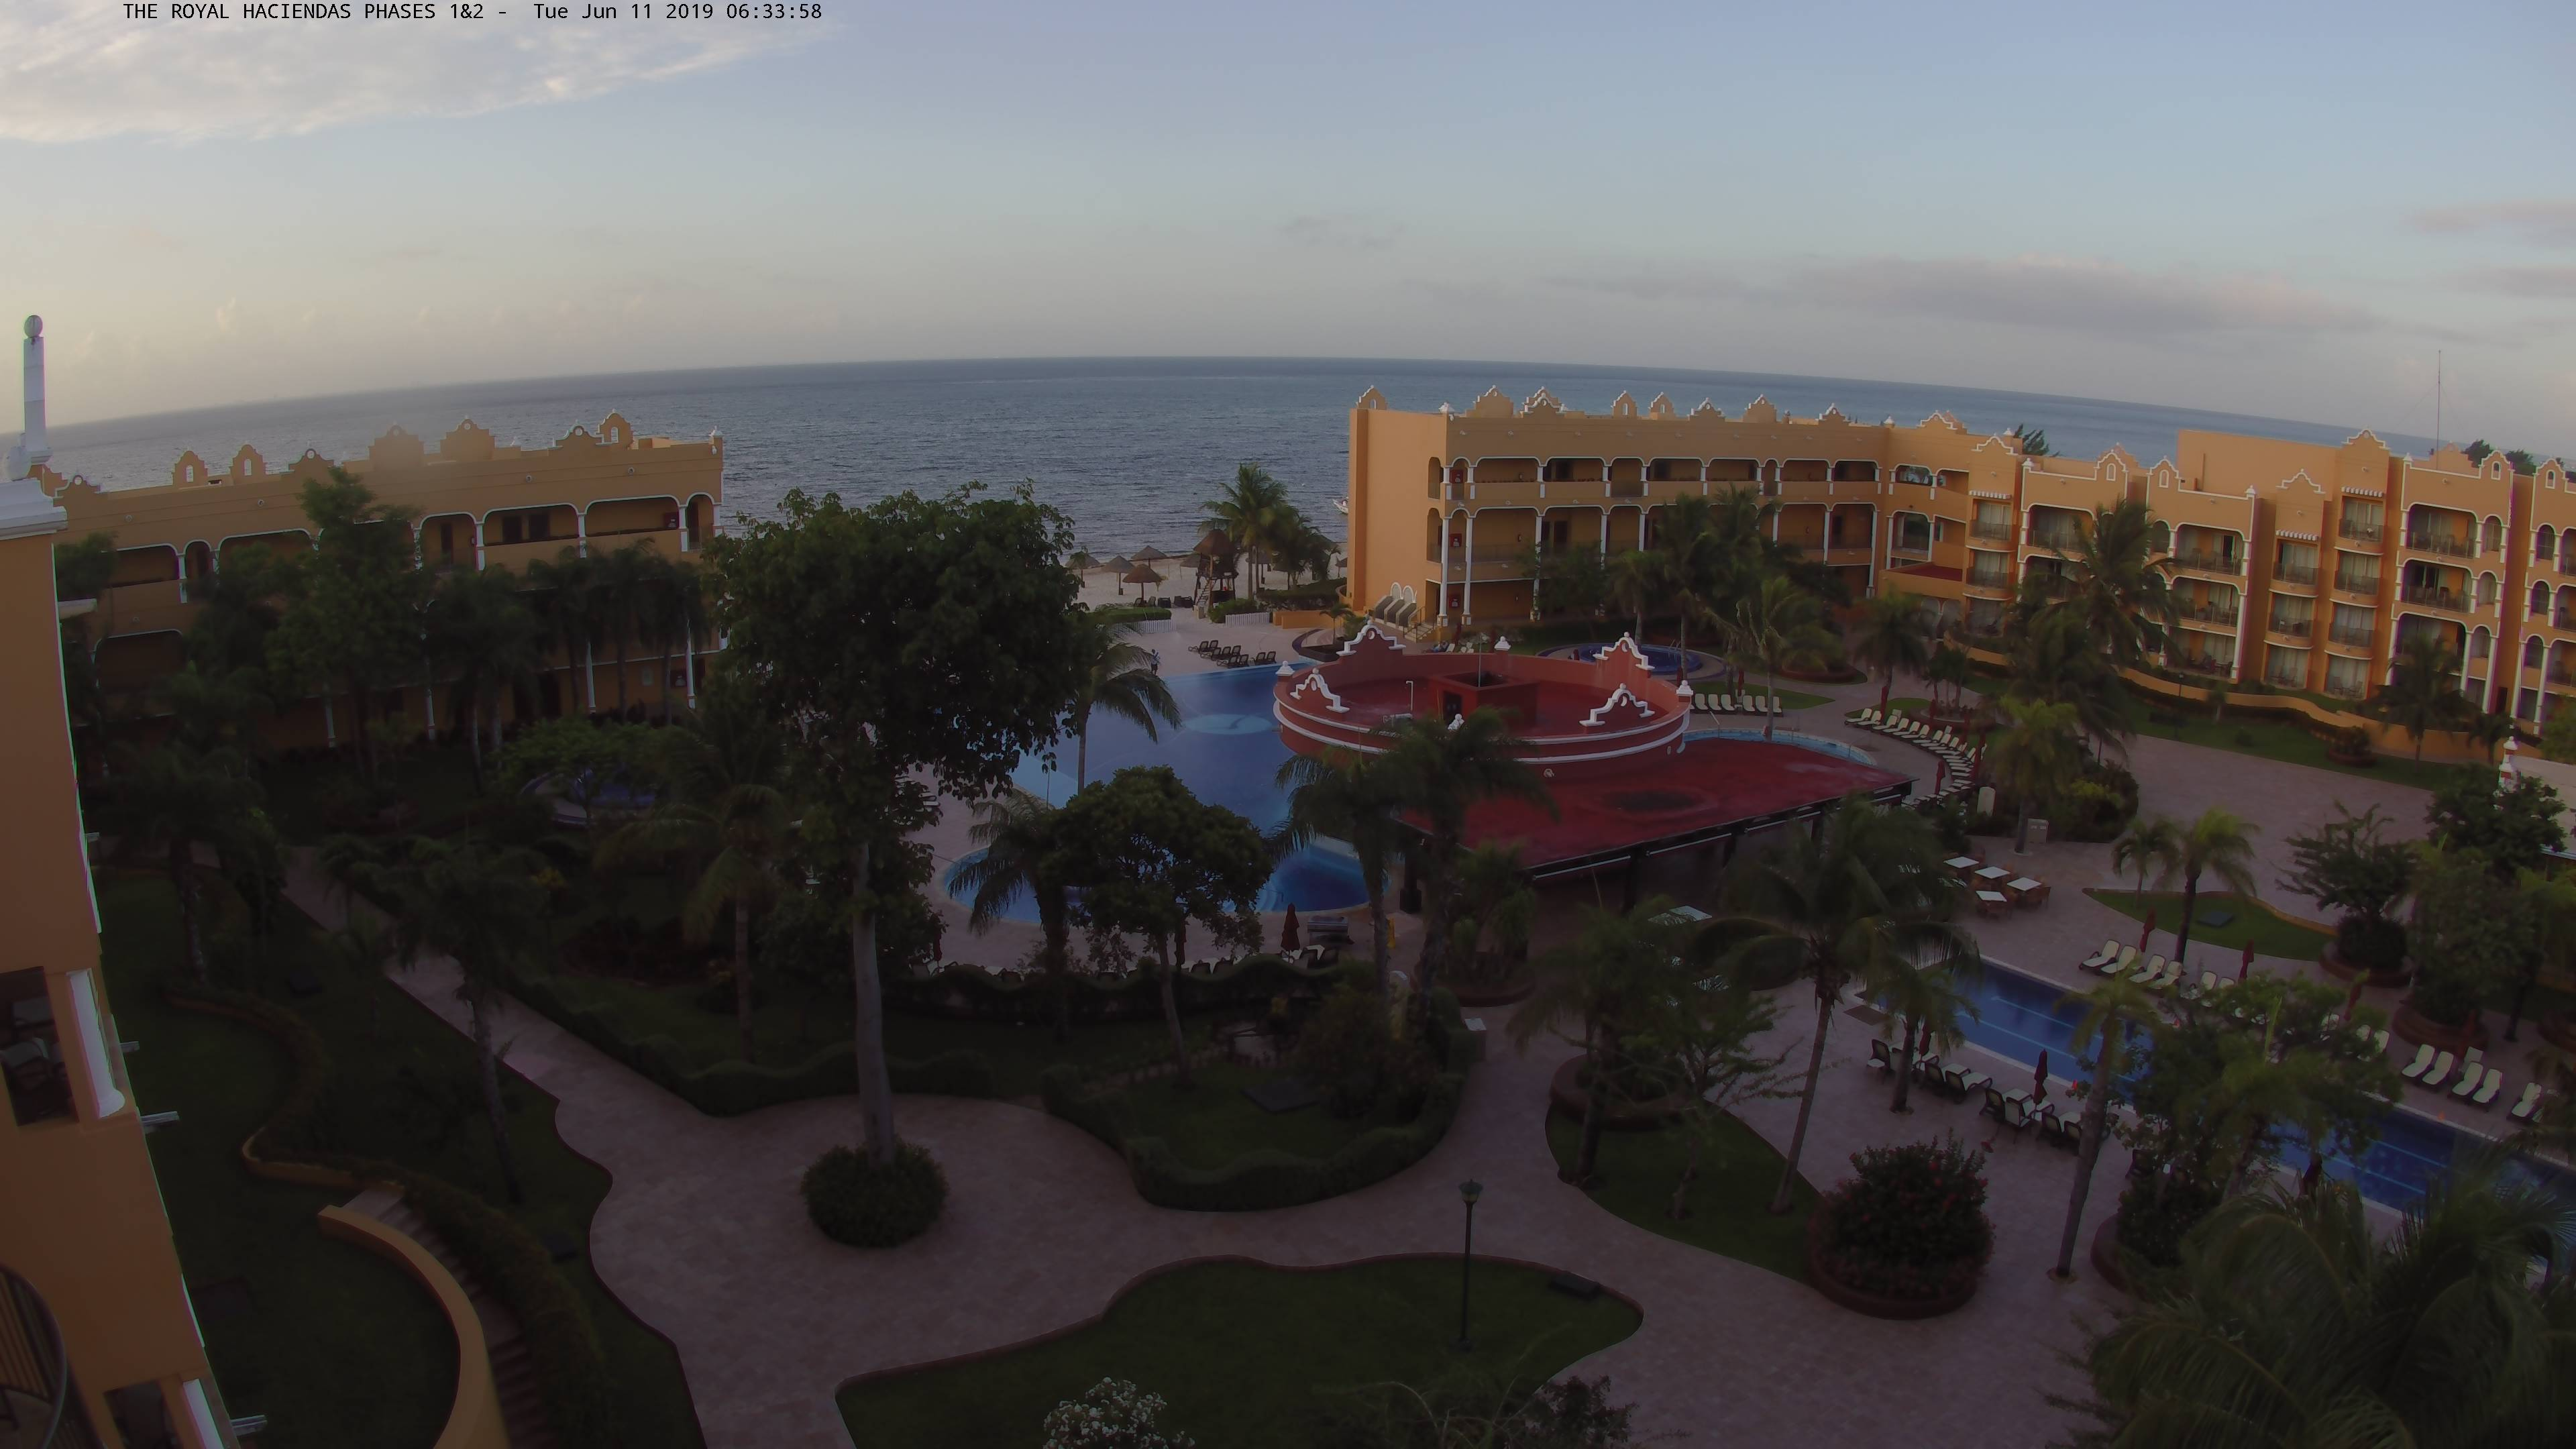 Riviera Maya Beach Weather Cam Cancun Mexico Live Webcam From Cancun Mexico